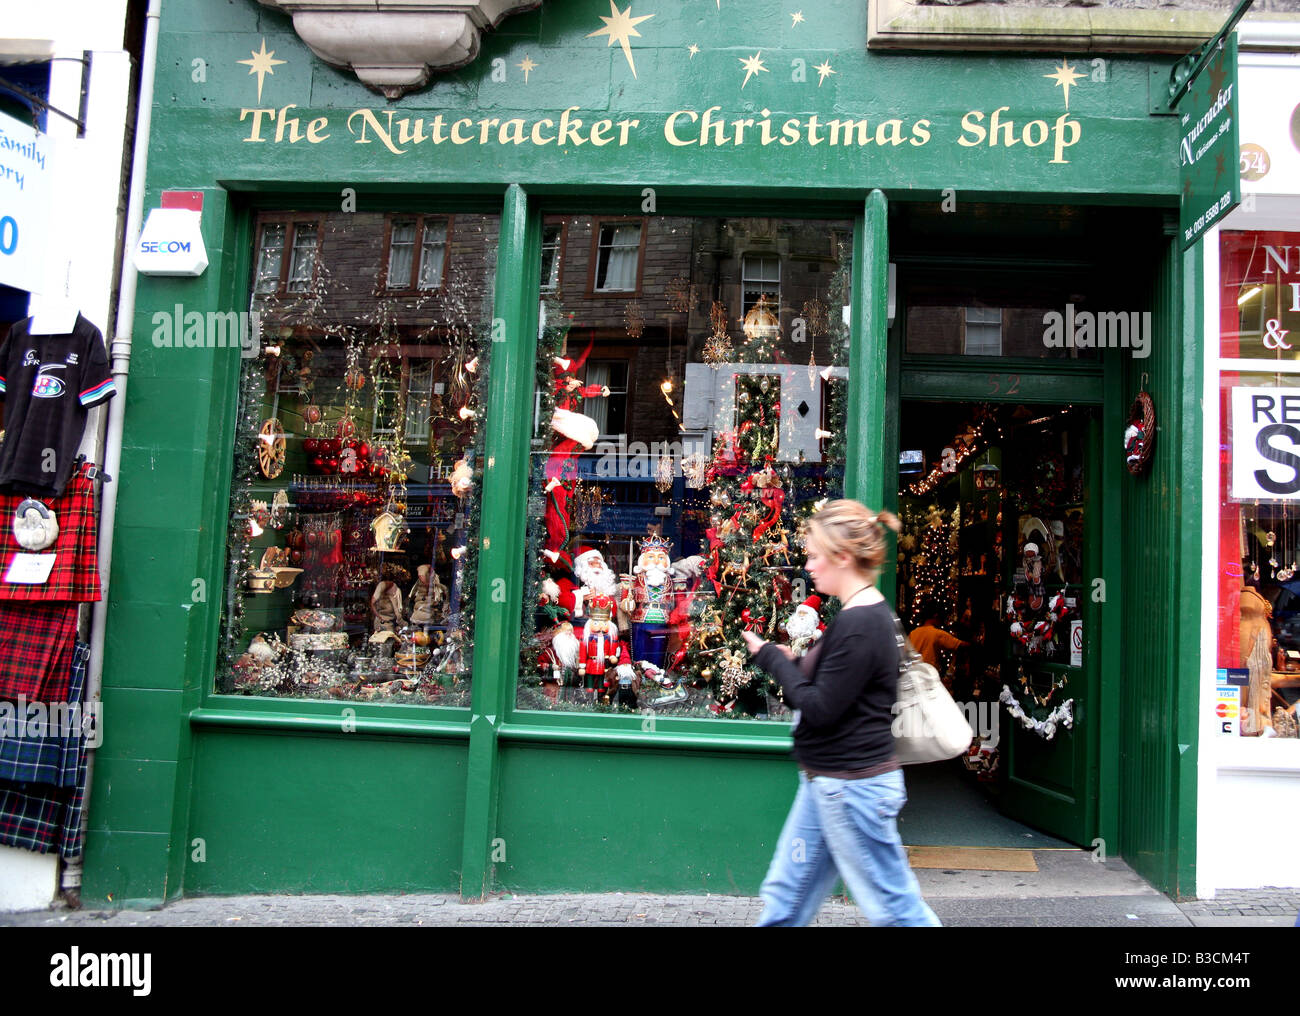 Year-round Christmas shop in Edinburgh Old Town - Stock Image